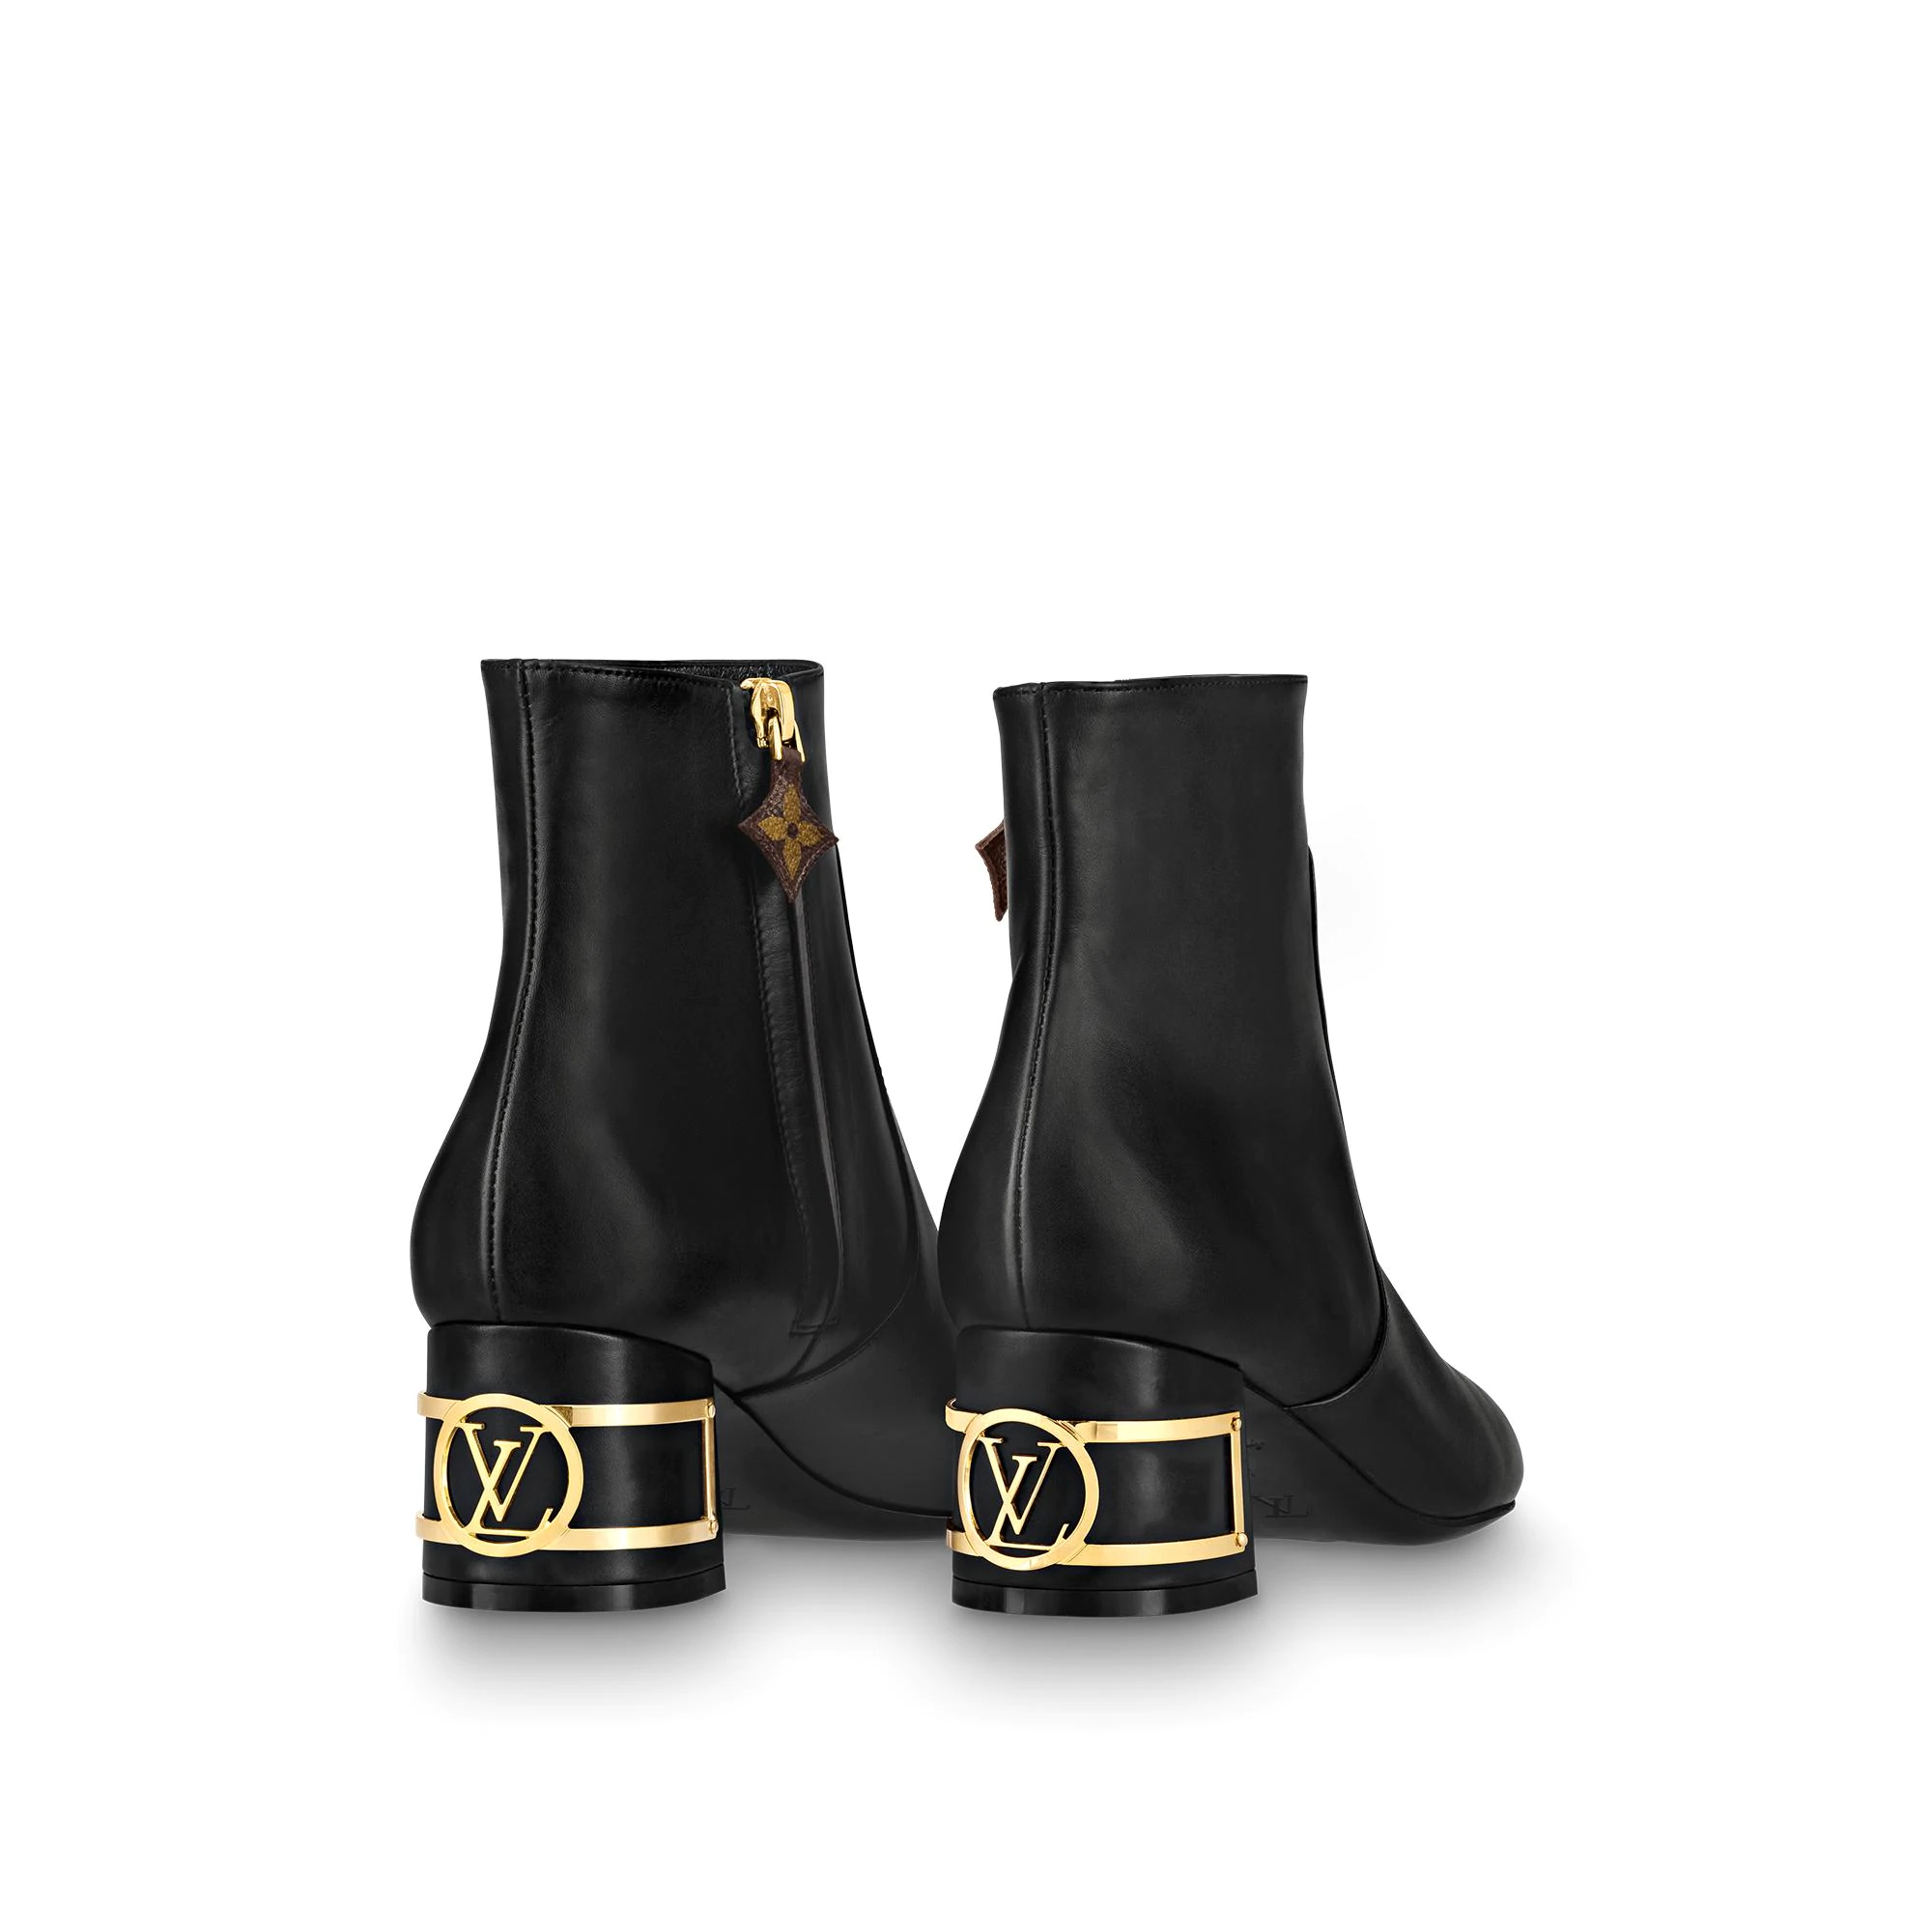 유럽직배송 루이비통 LOUIS VUITTON Bliss Ankle Boots 1A671H